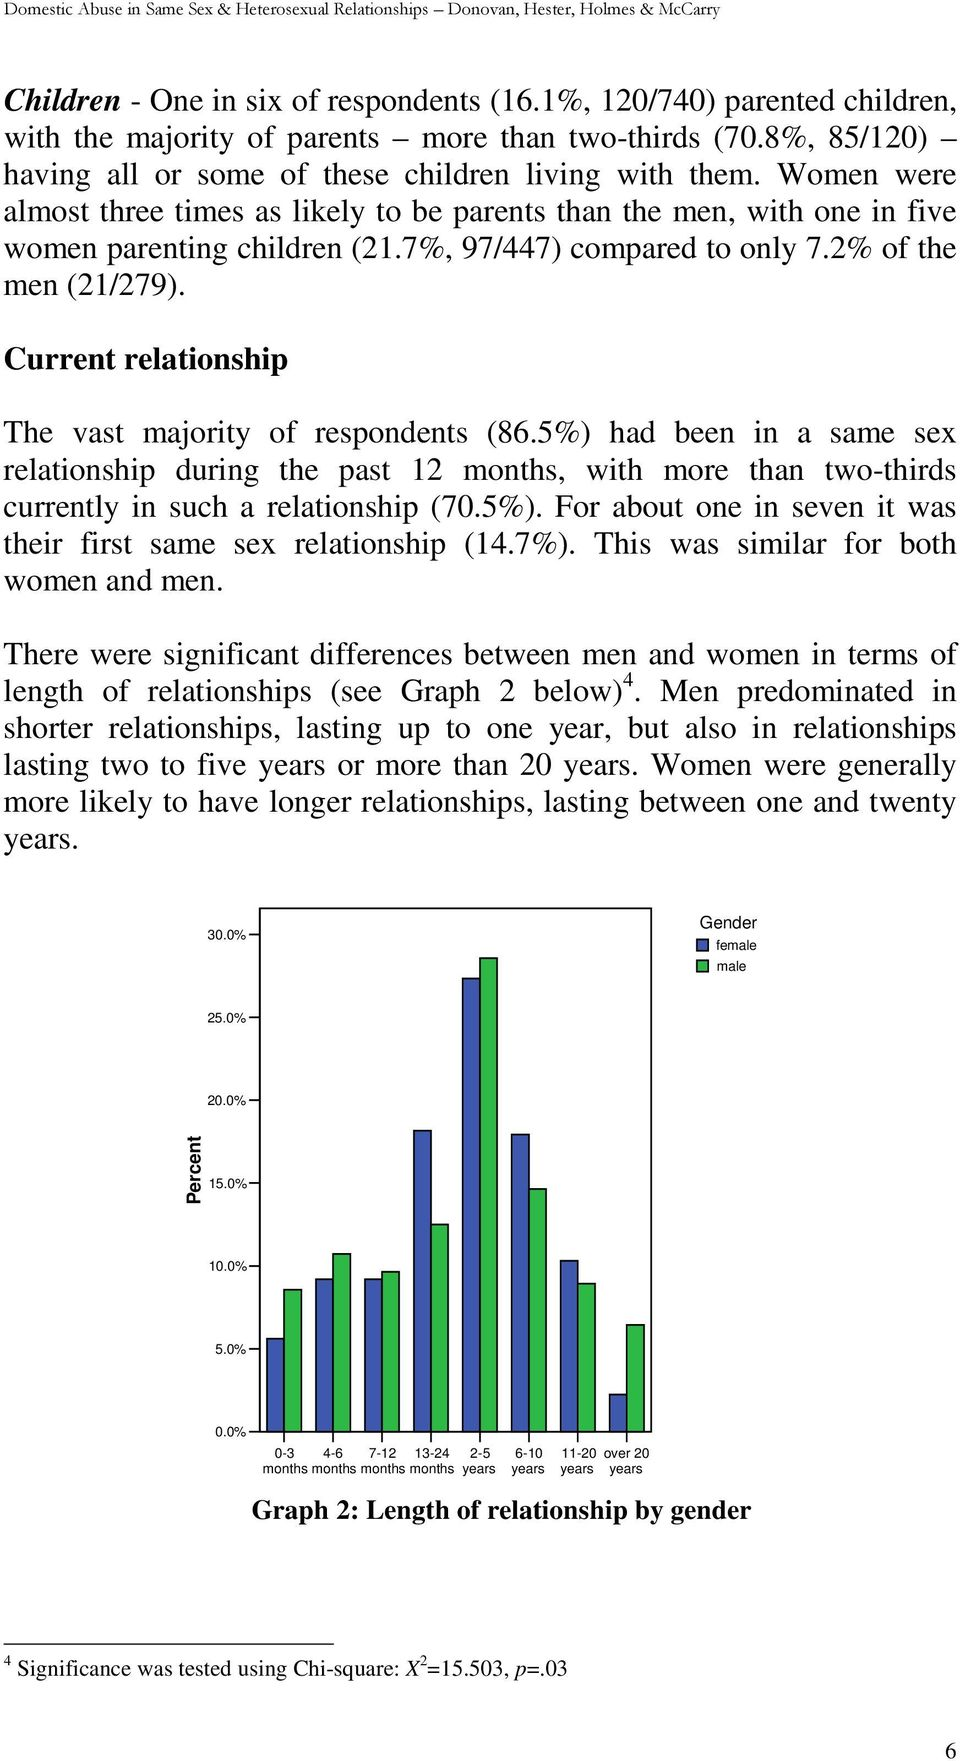 Current relationship The vast majority of respondents (86.5%) had been in a same sex relationship during the past 12 months, with more than two-thirds currently in such a relationship (70.5%). For about one in seven it was their first same sex relationship (14.